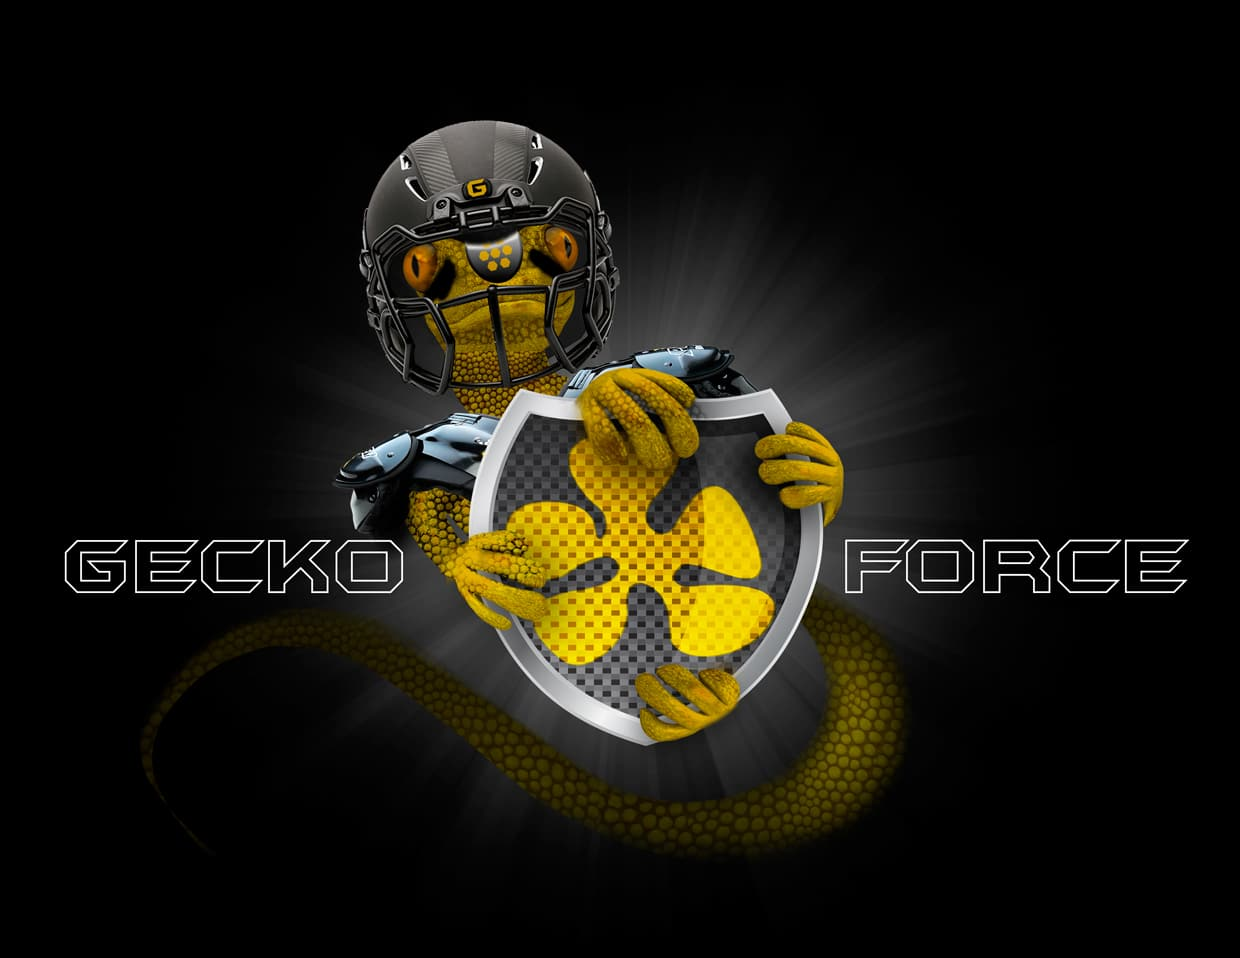 Geck Force Logo Brand and Official Mascot with demo helmet, Mr. Gecko!